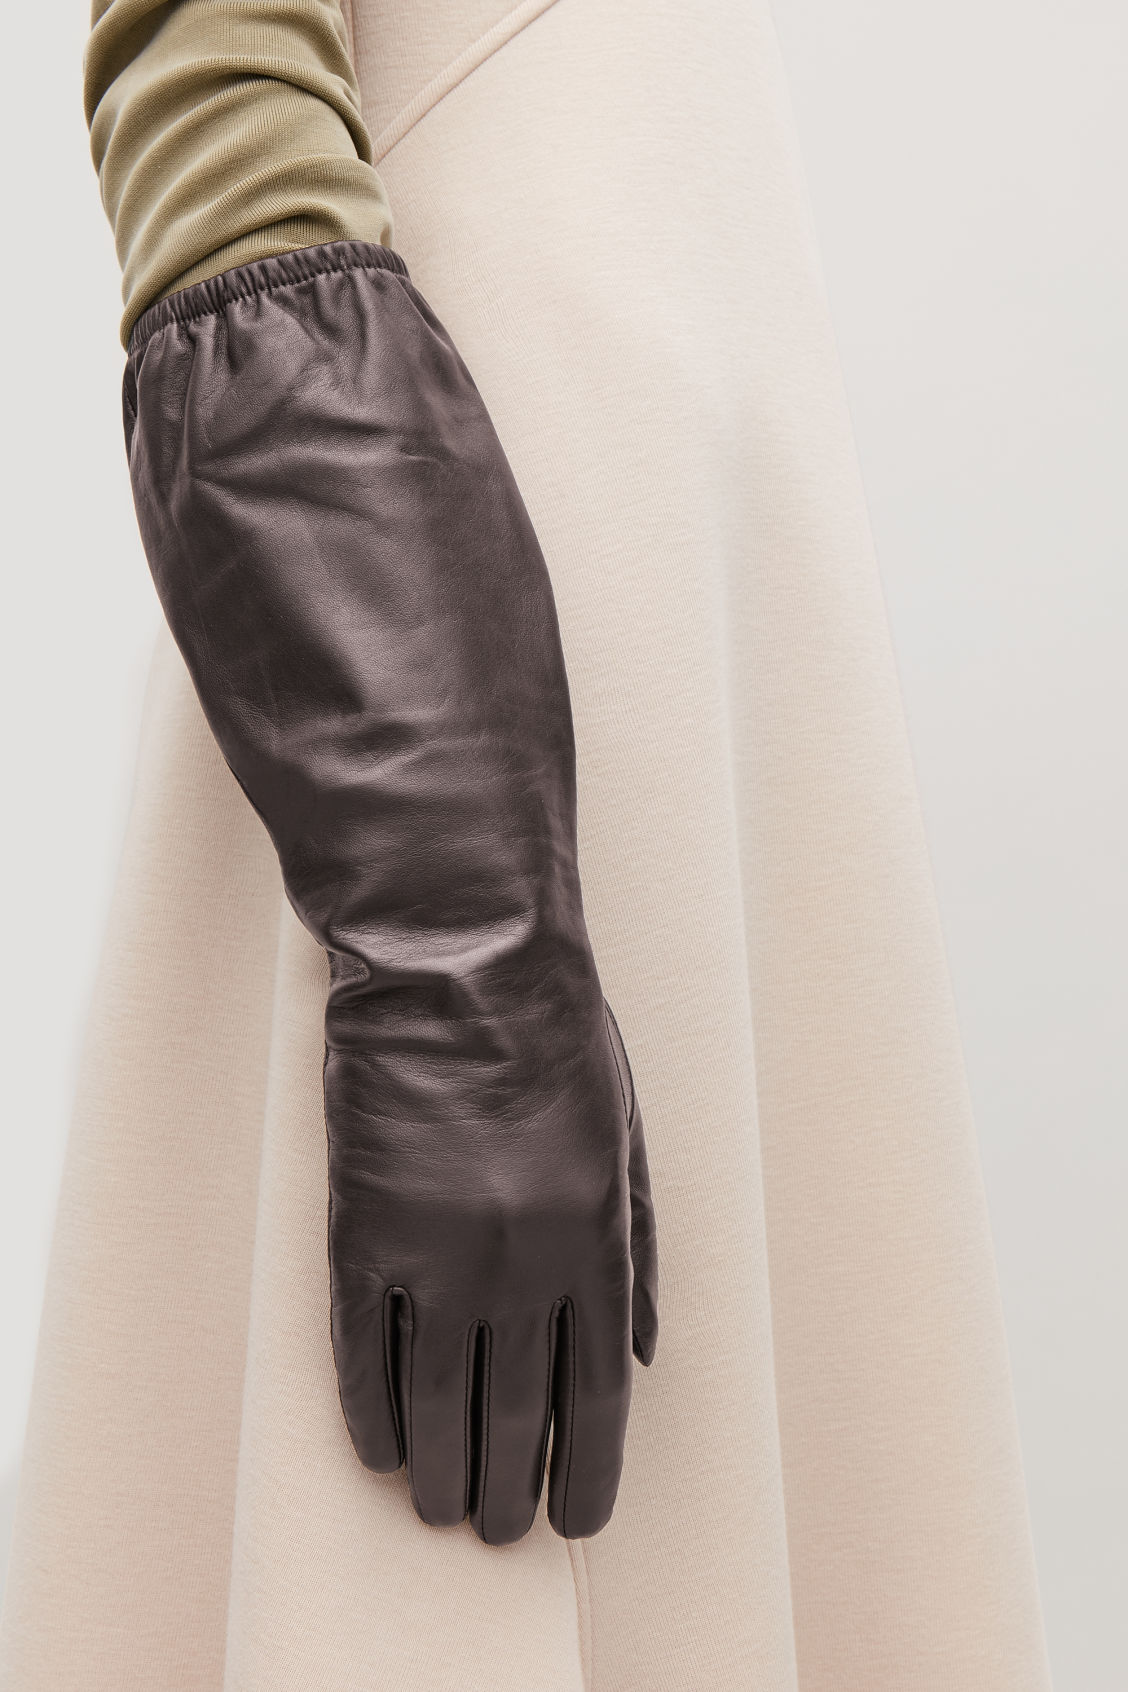 Detailed image of Cos long leather gloves in brown